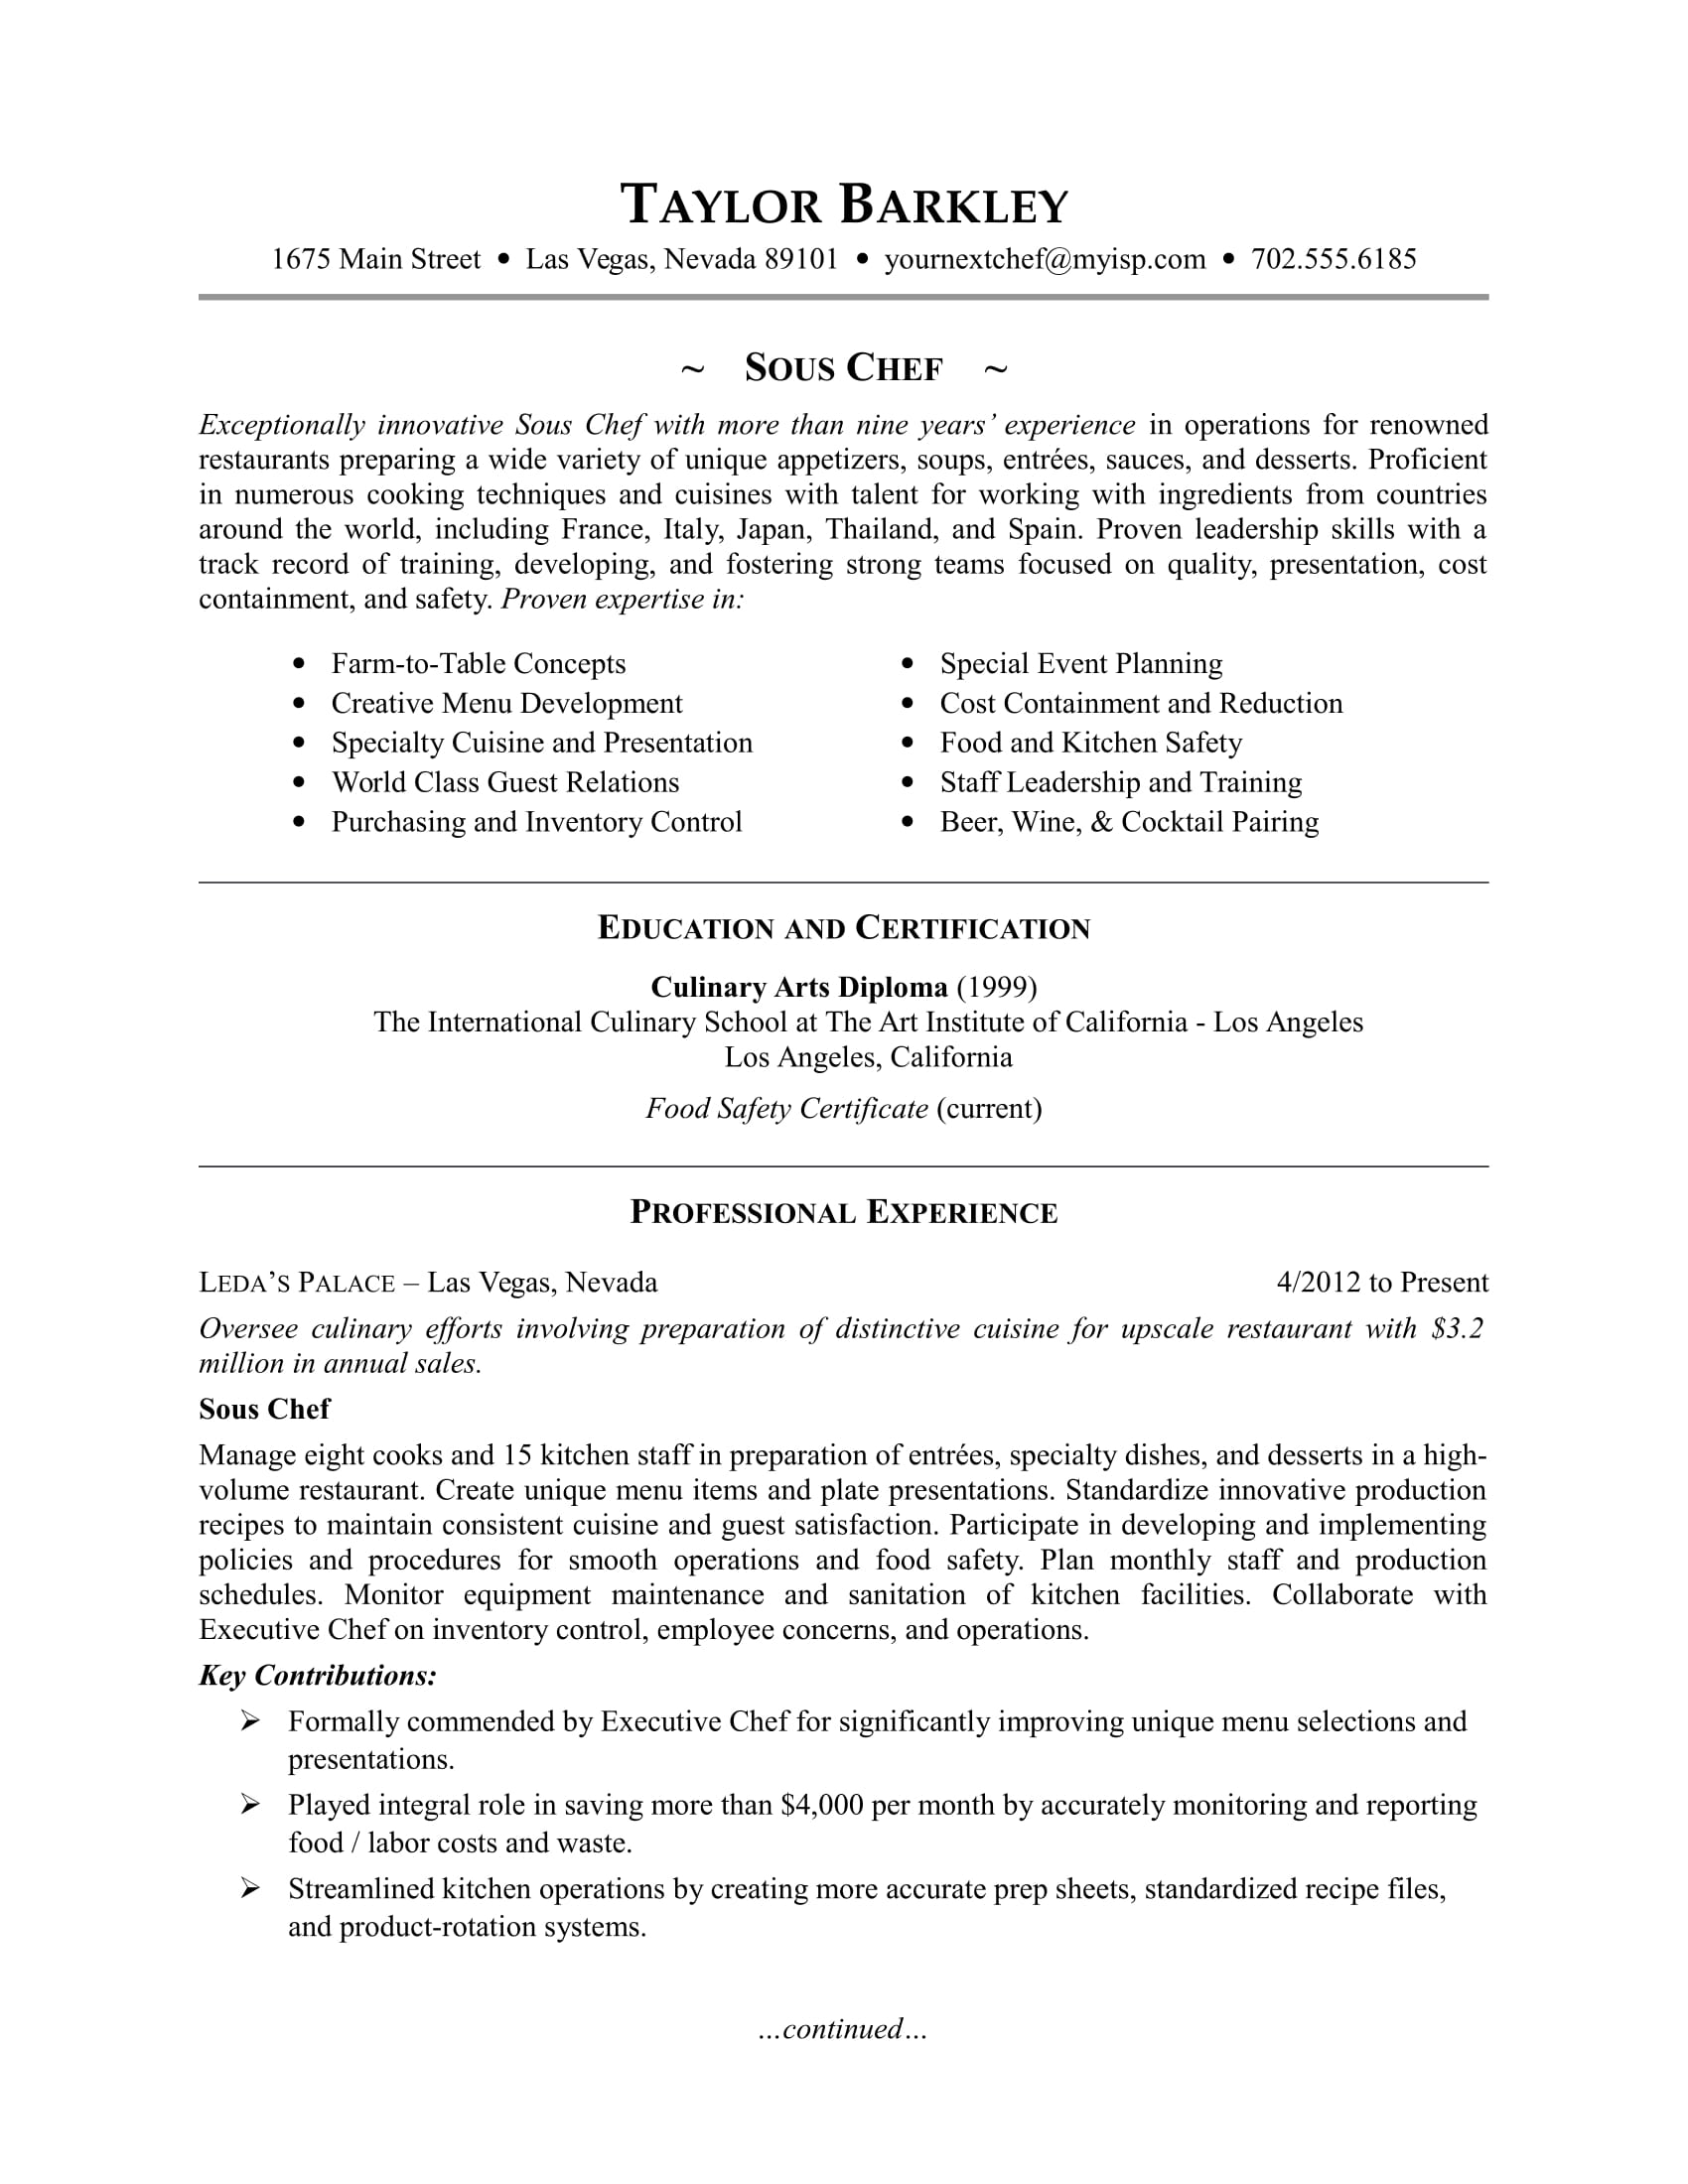 sample resume for a sous chef - Professional Chef Resume